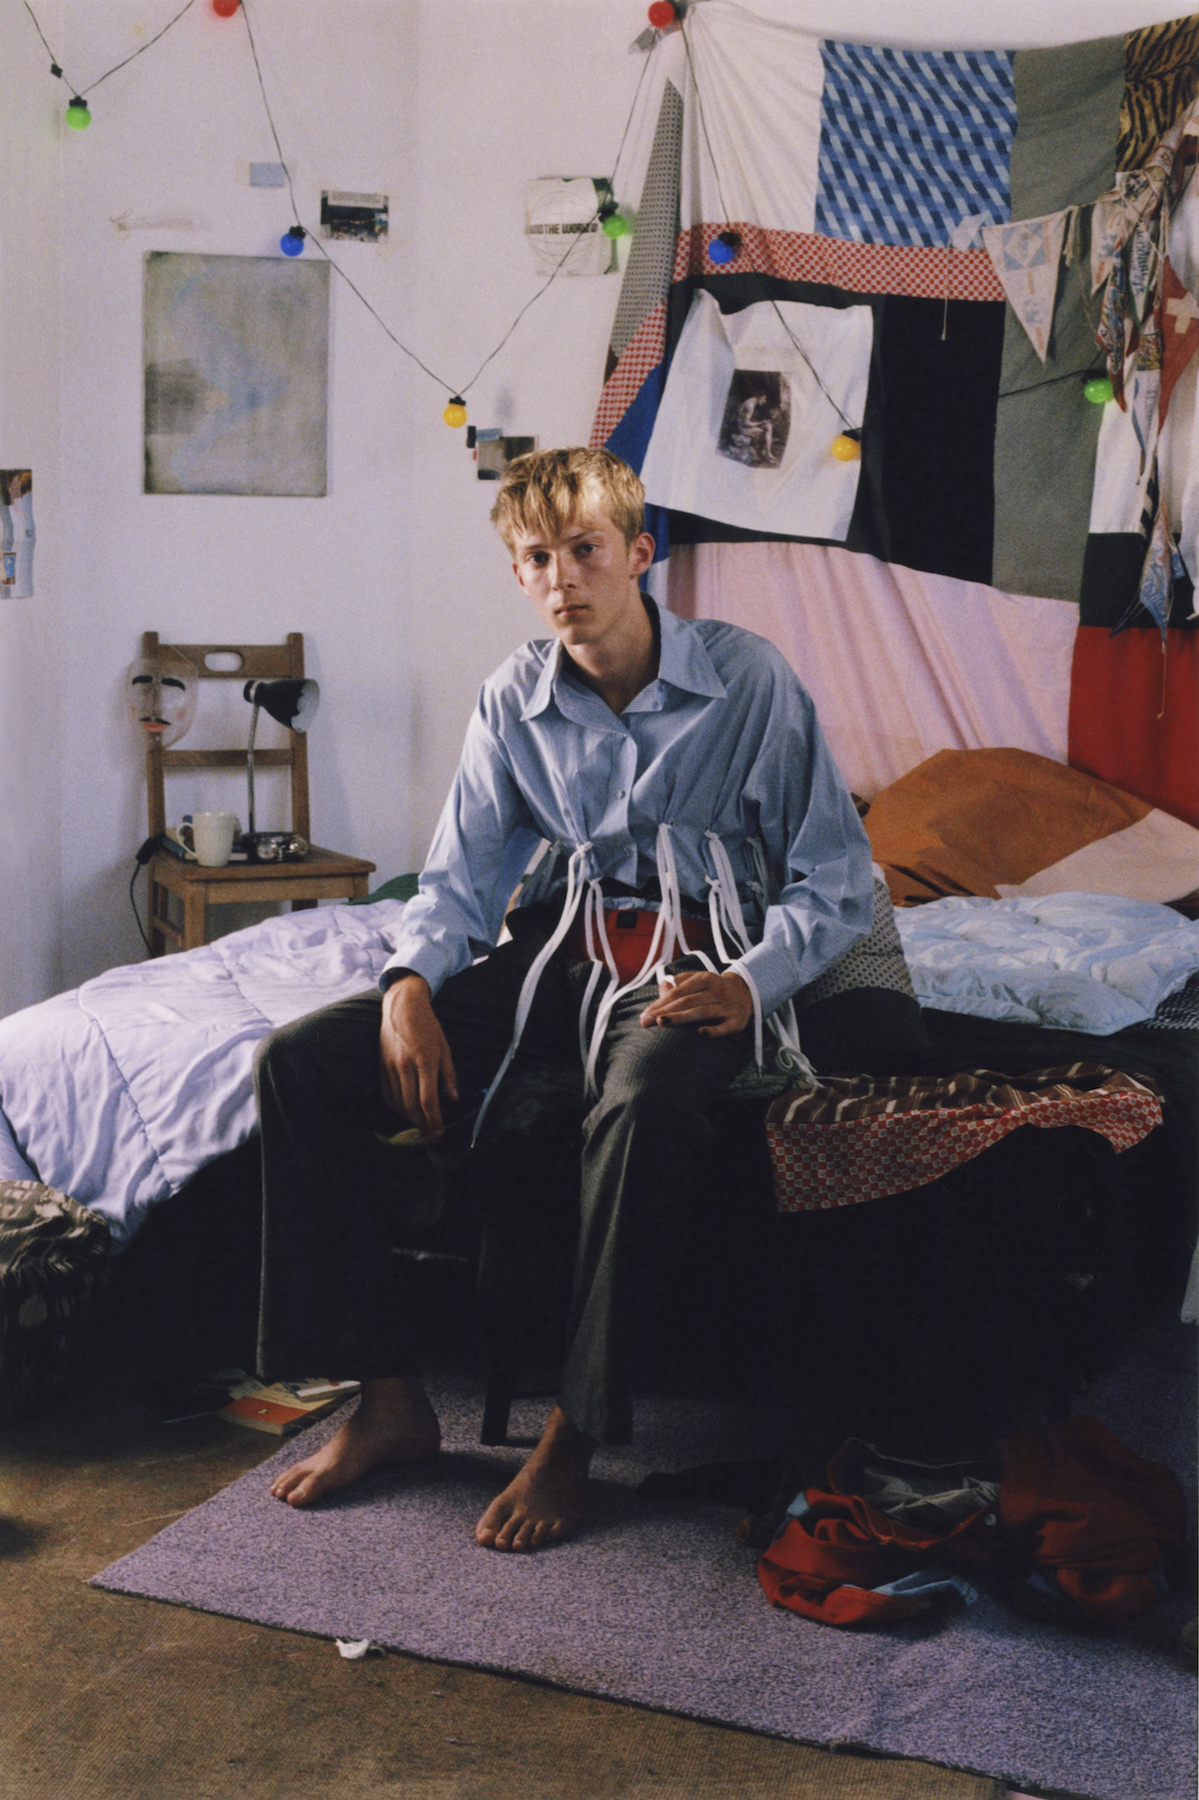 PIETER ELIËNS Johnny Magazine 'Reclining youth'